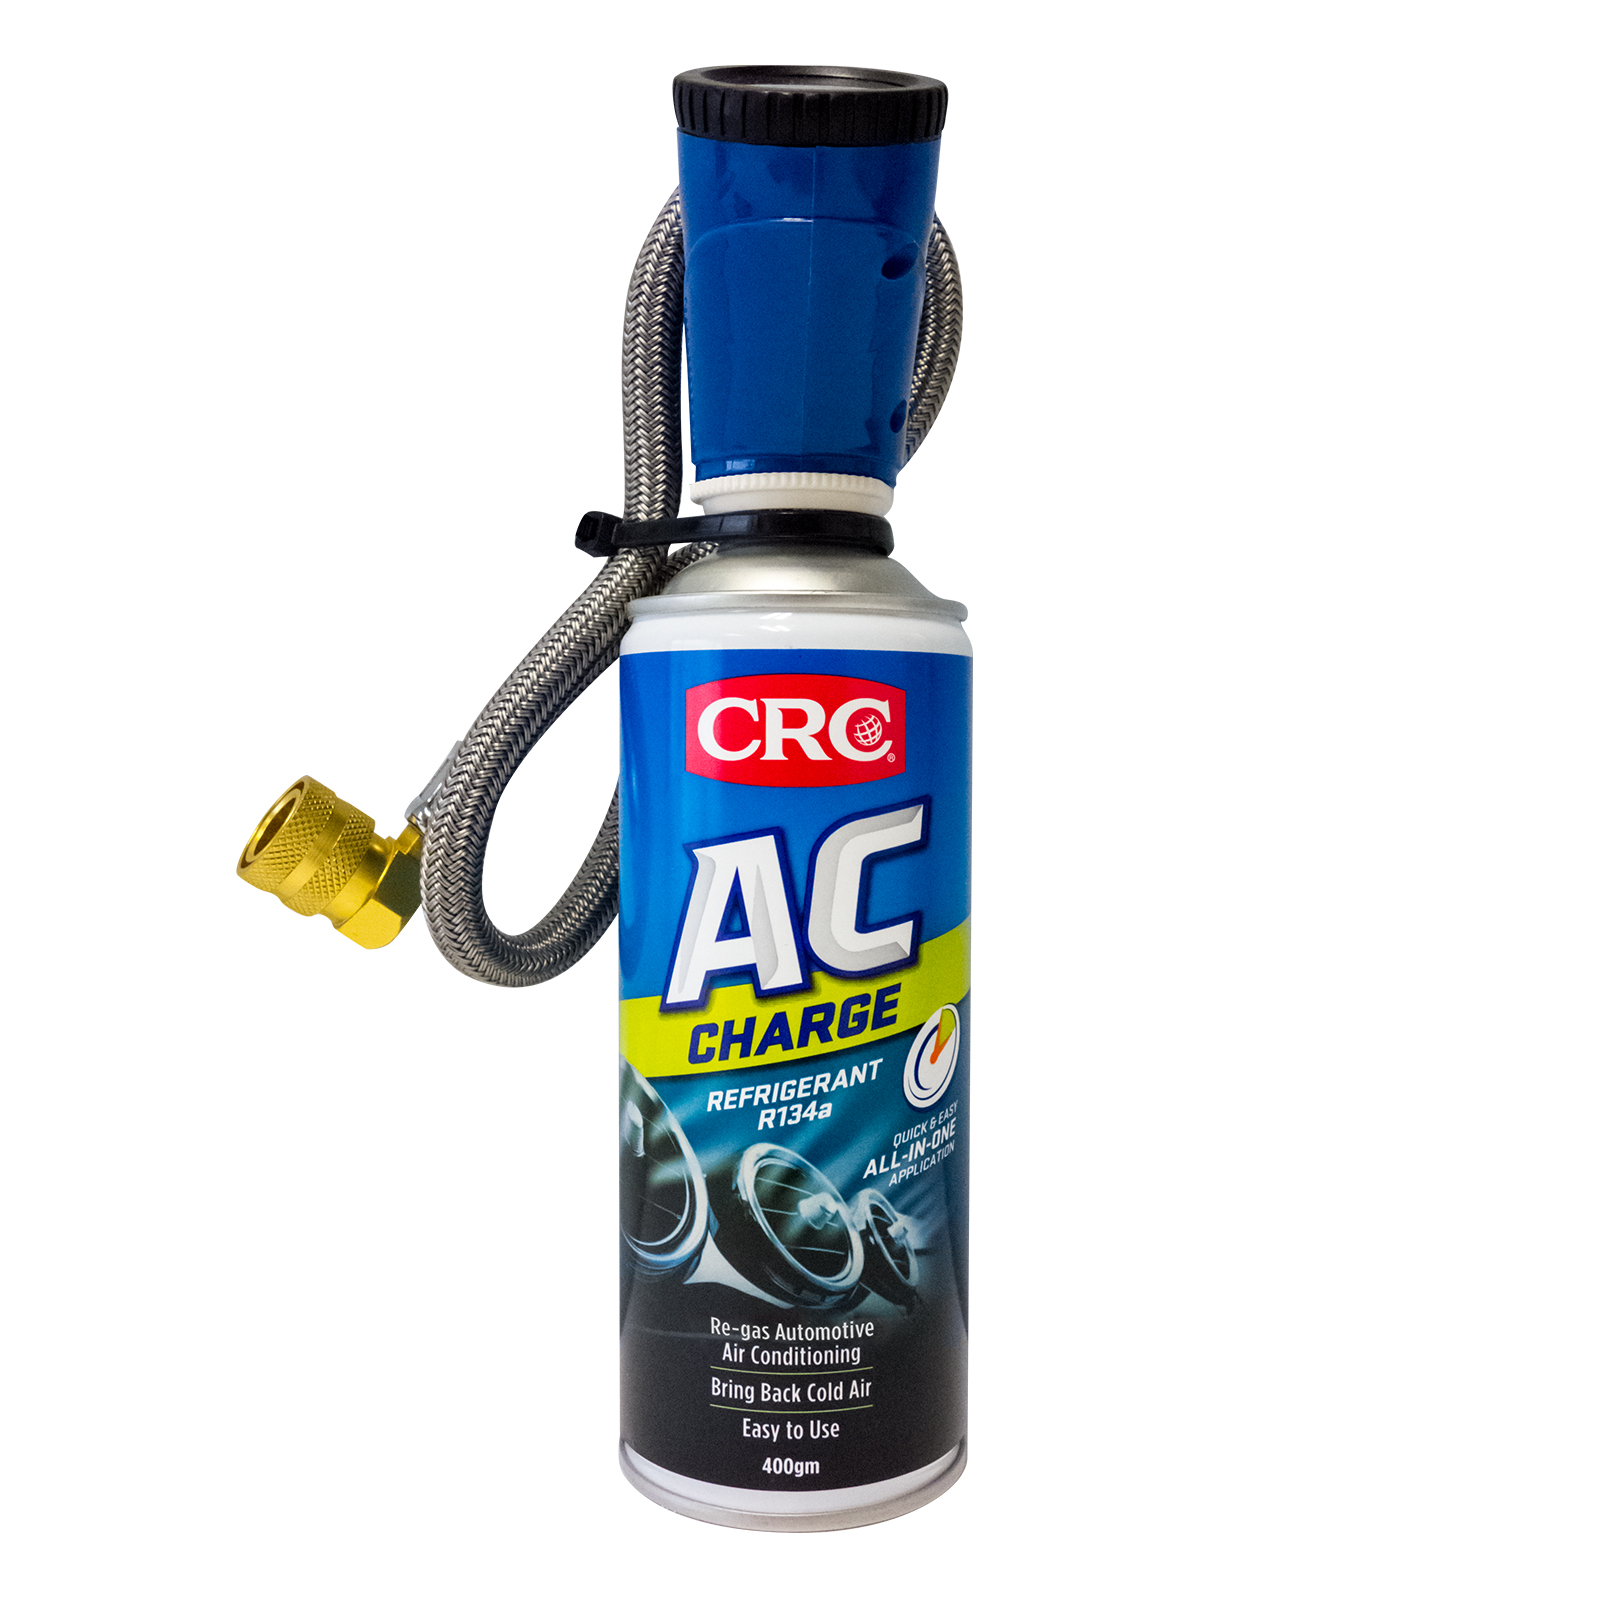 Inexpensive, quick way to refill your air-conditioning with refrigerant